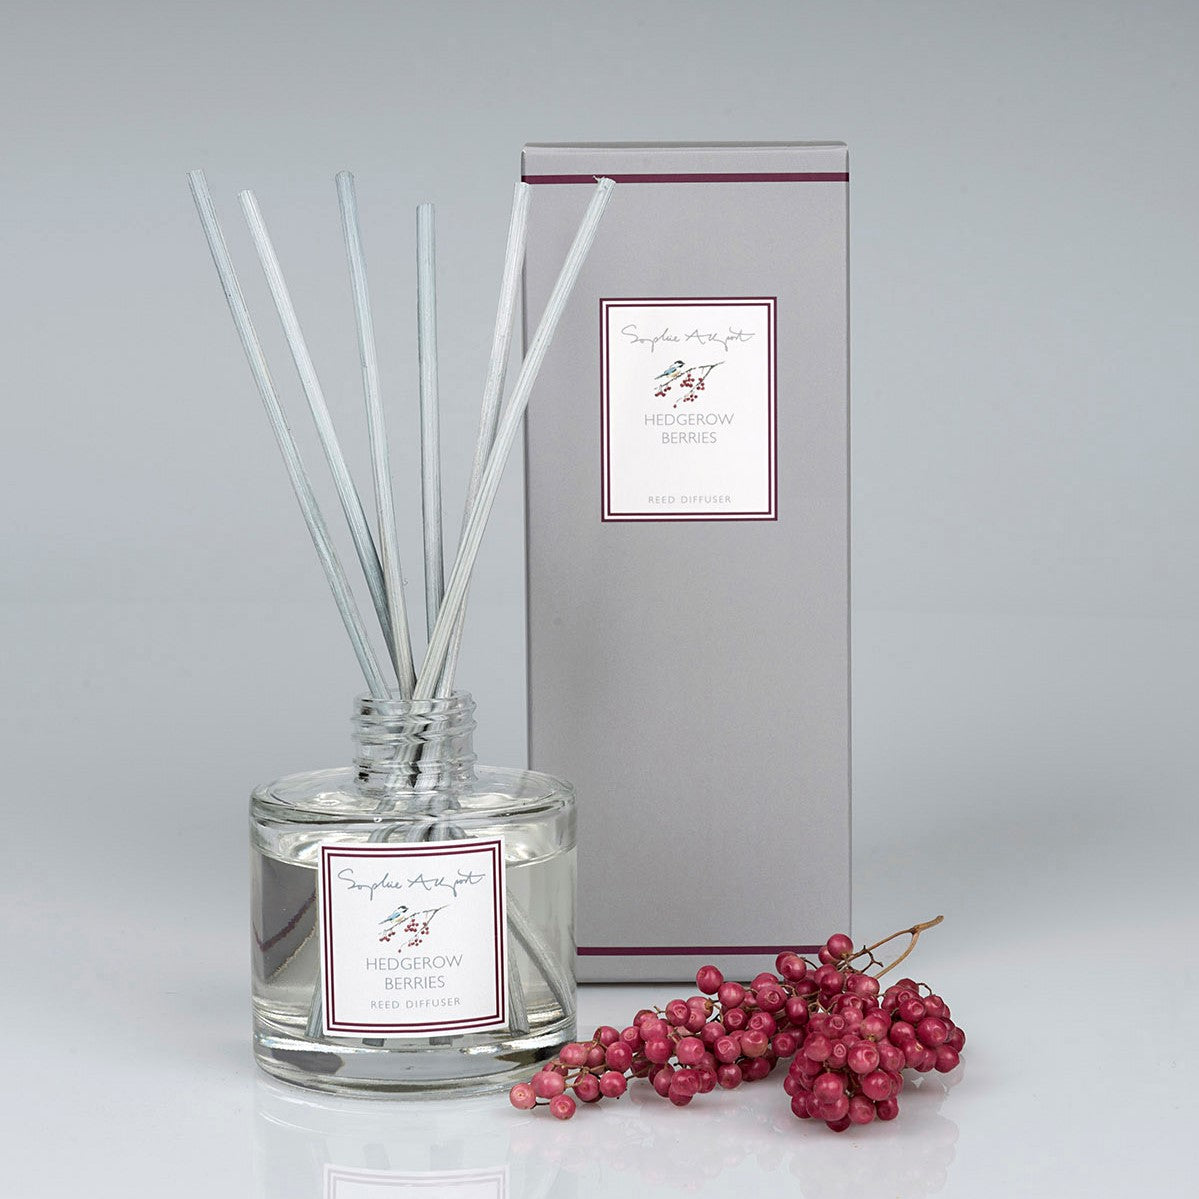 Hedgerow Berries Scented Reed Diffuser